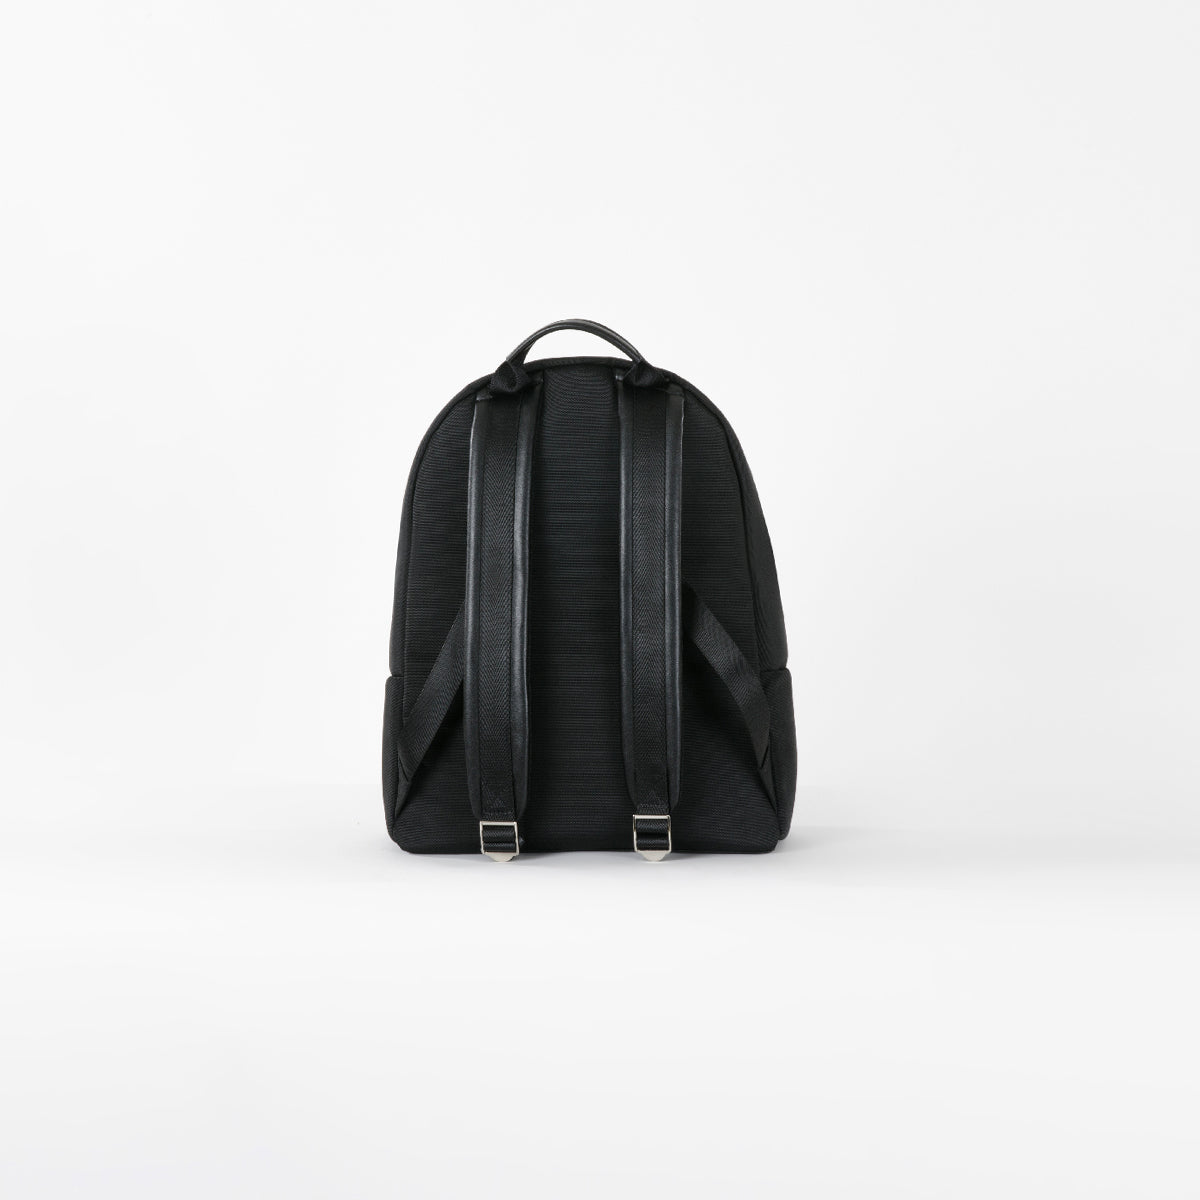 Shiro Recycled Backpack